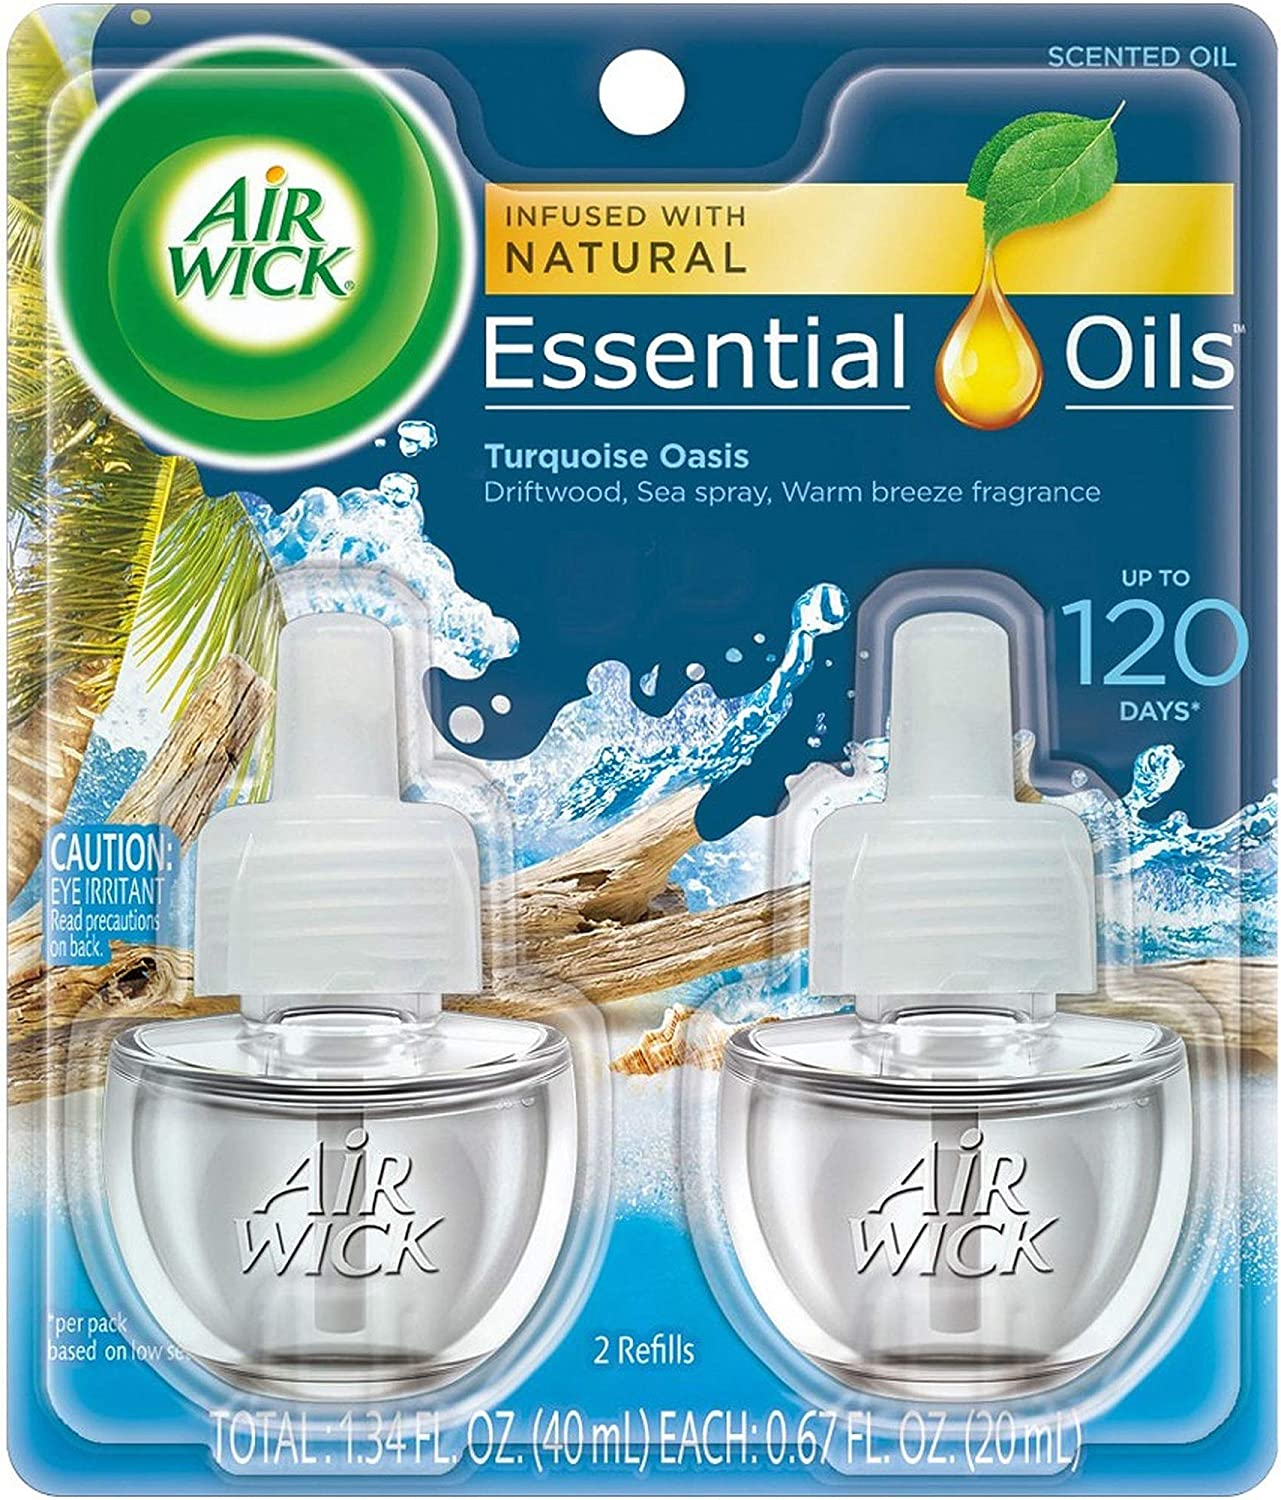 Air Wick Life Scents Scented Oil Plug in Air Freshener Refills, Turquoise Oasis 1.34 Fl Oz (Pack of 2)